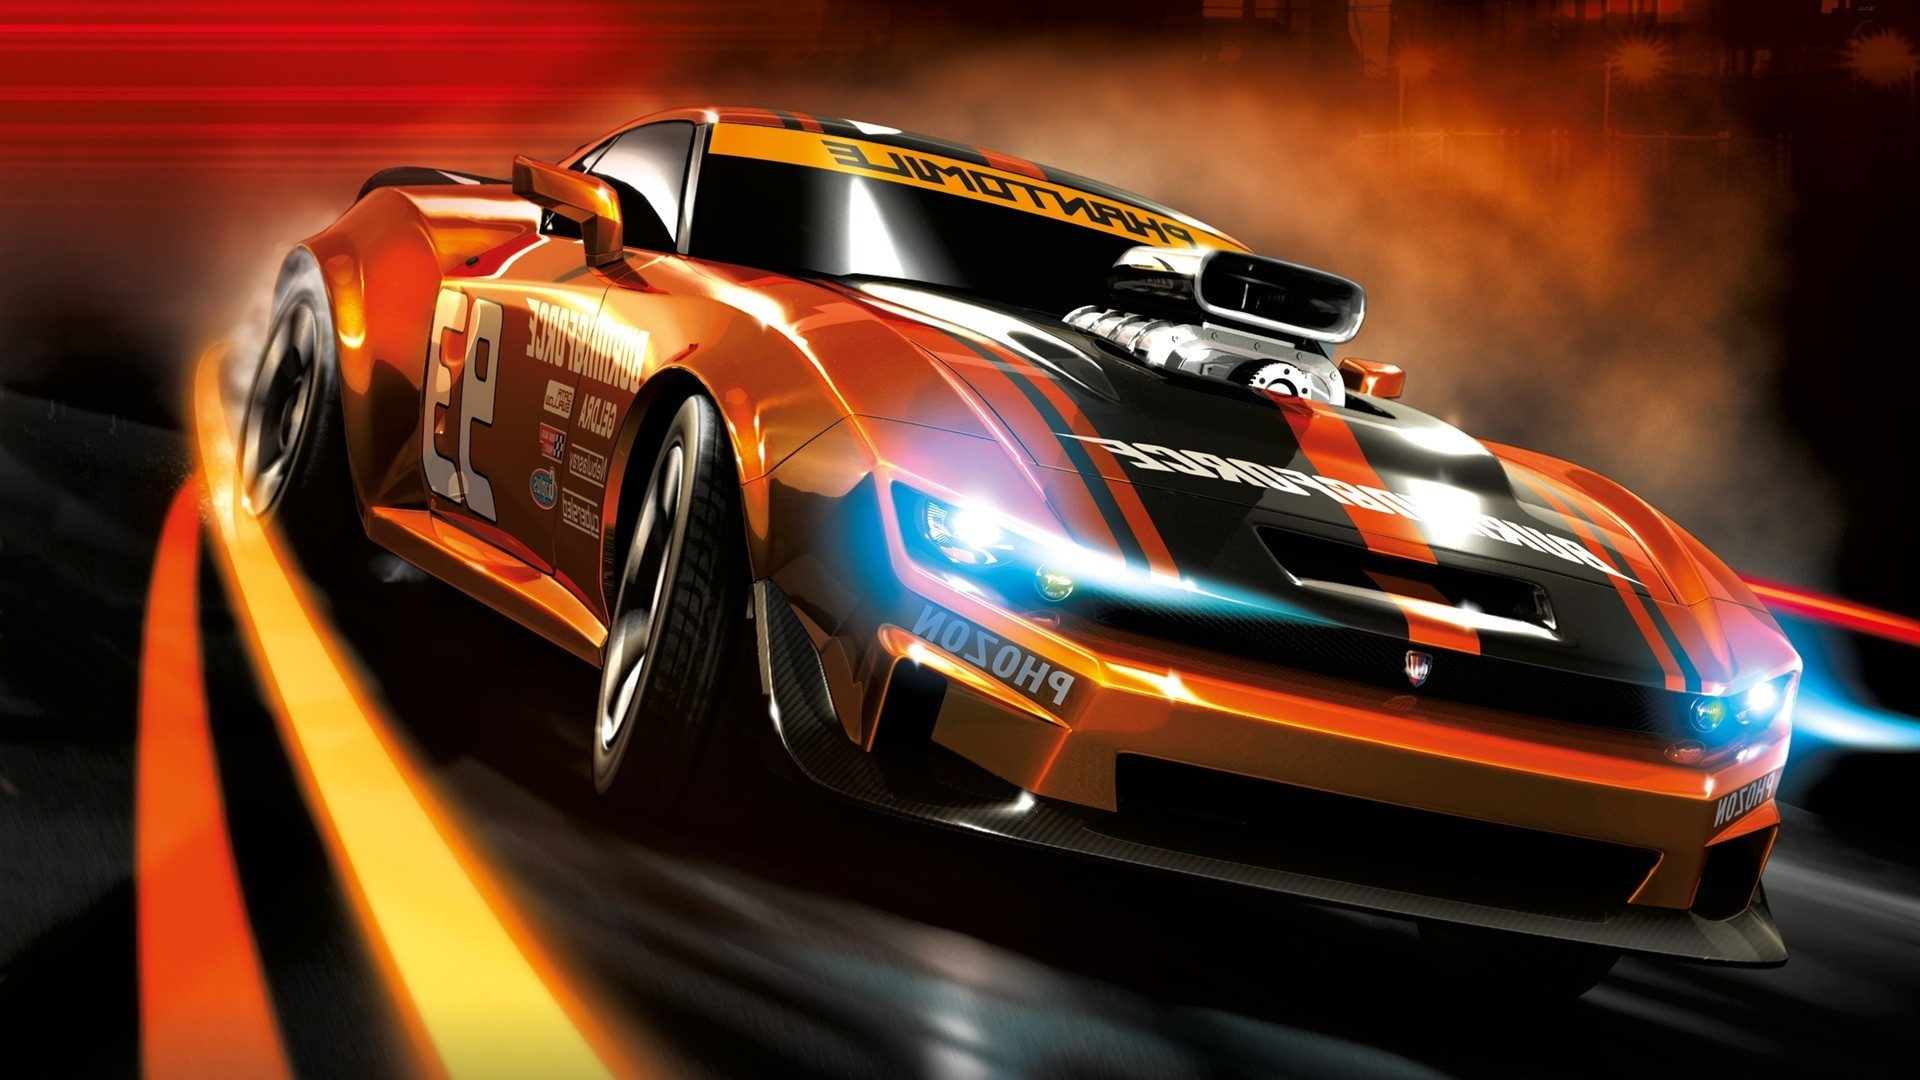 Cool cars wallpapers wallpapertag - Racing cars wallpapers for mobile ...